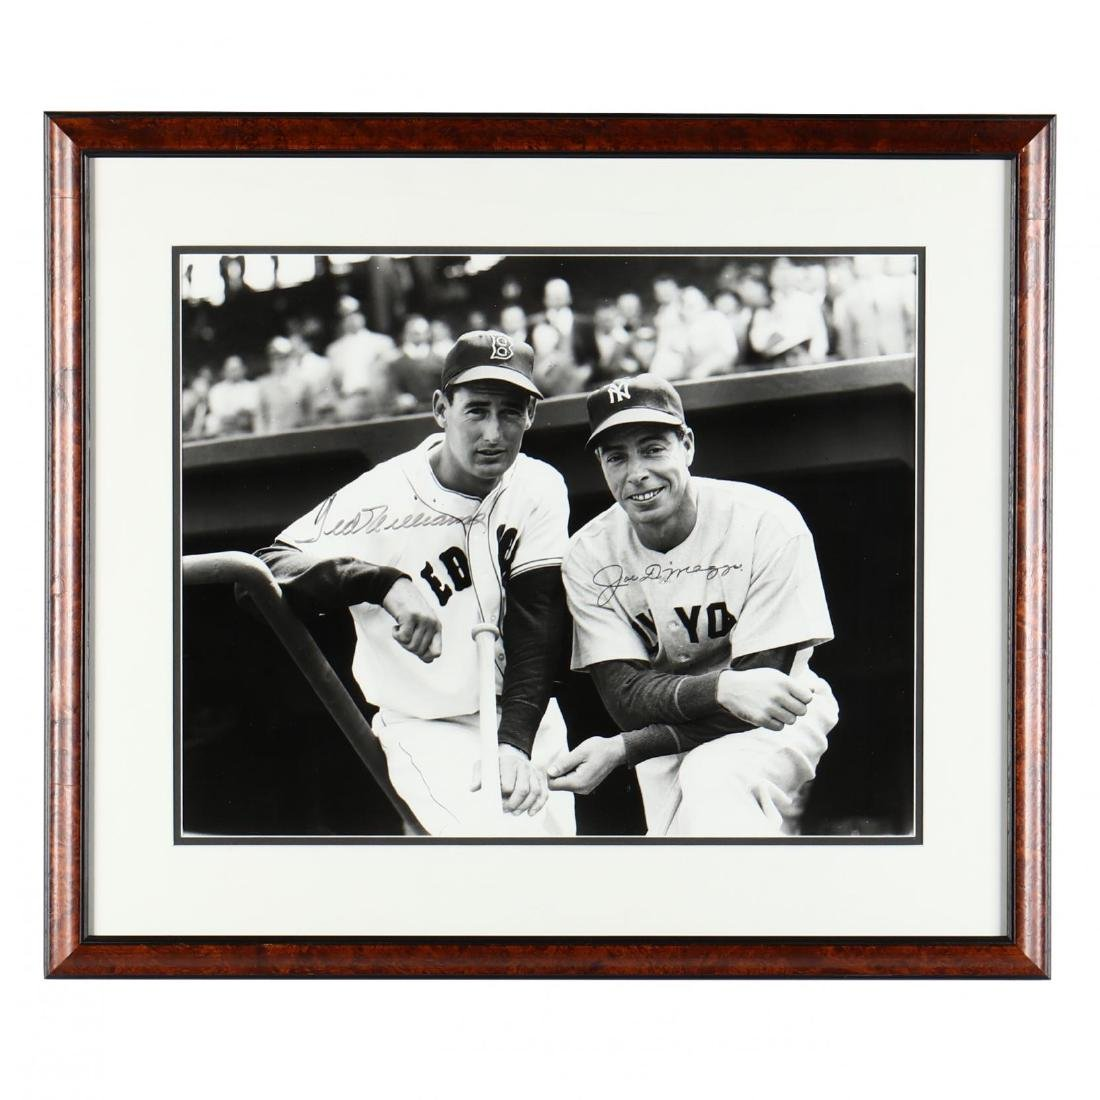 Joe DiMaggio and Ted Williams Signed Photograph